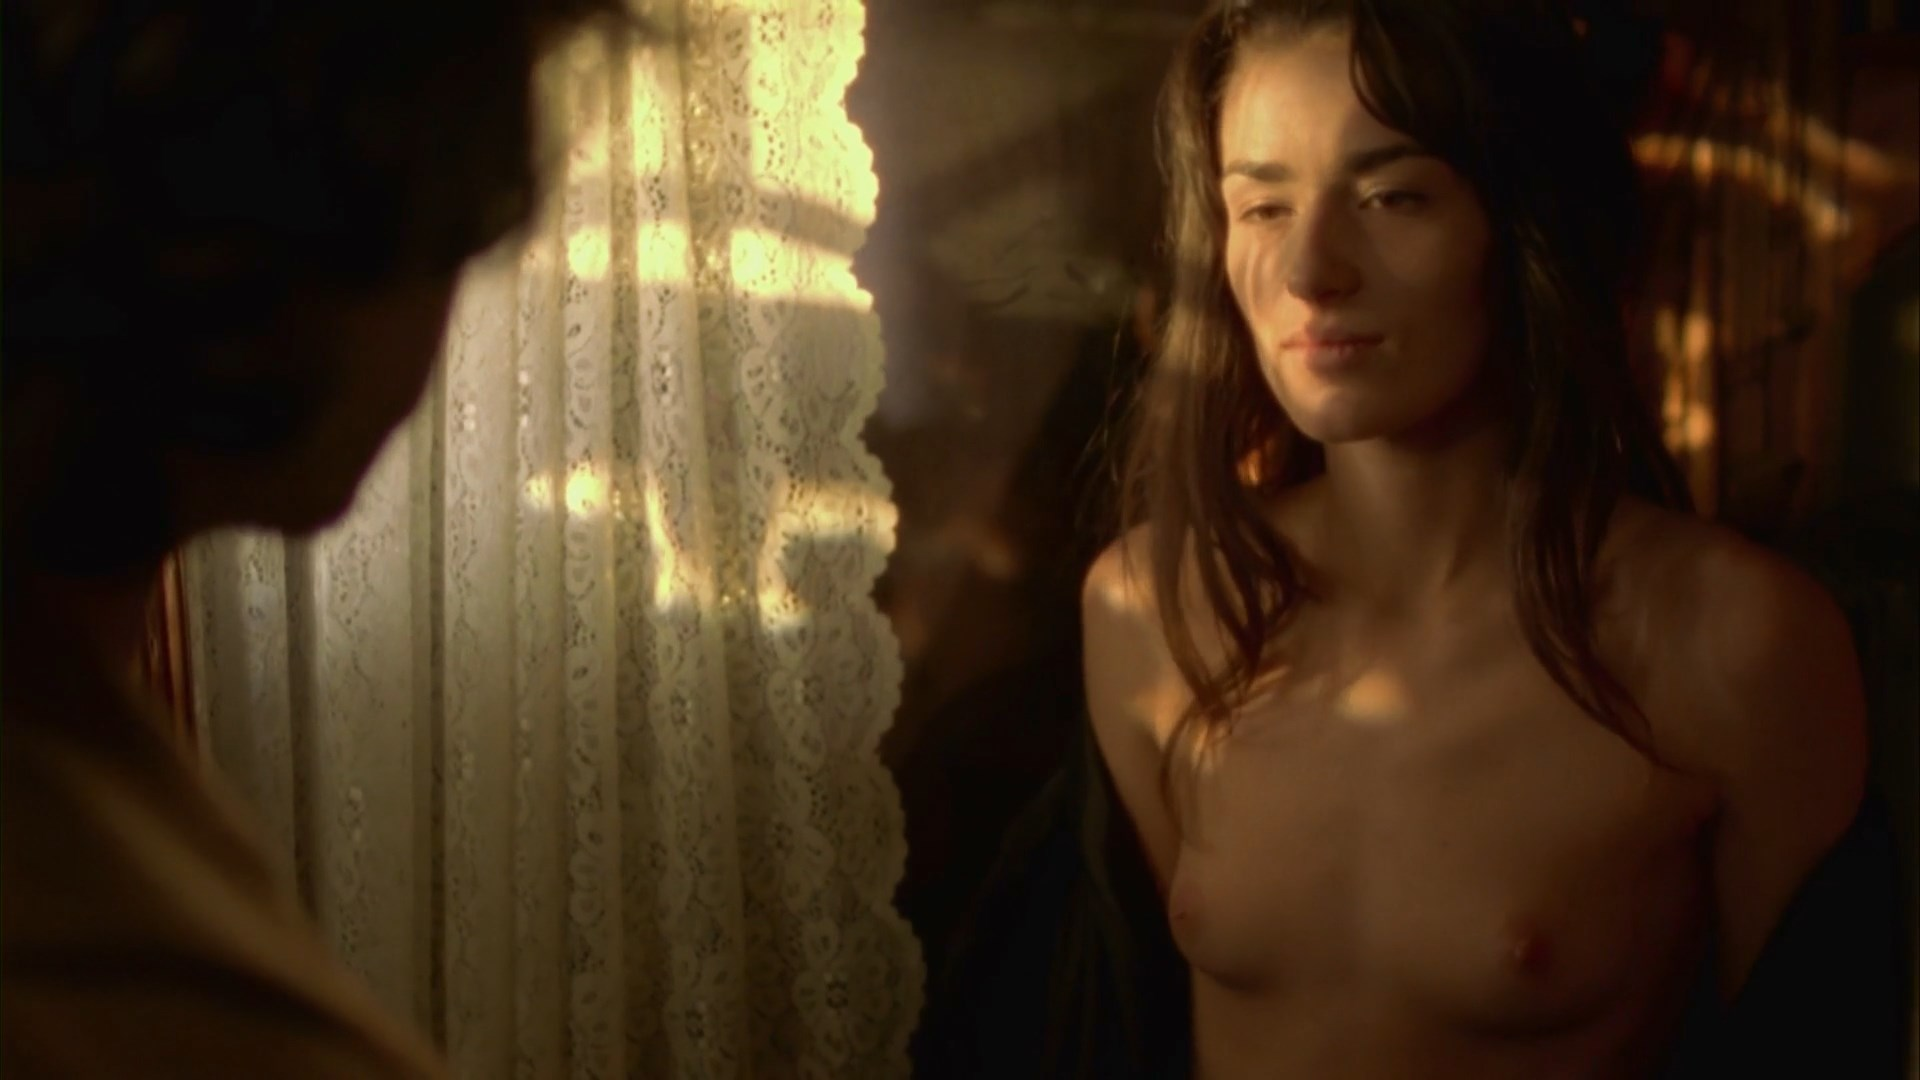 Allison Janney Nudography topless » page 199 » nudecelebvideo - your box of nude